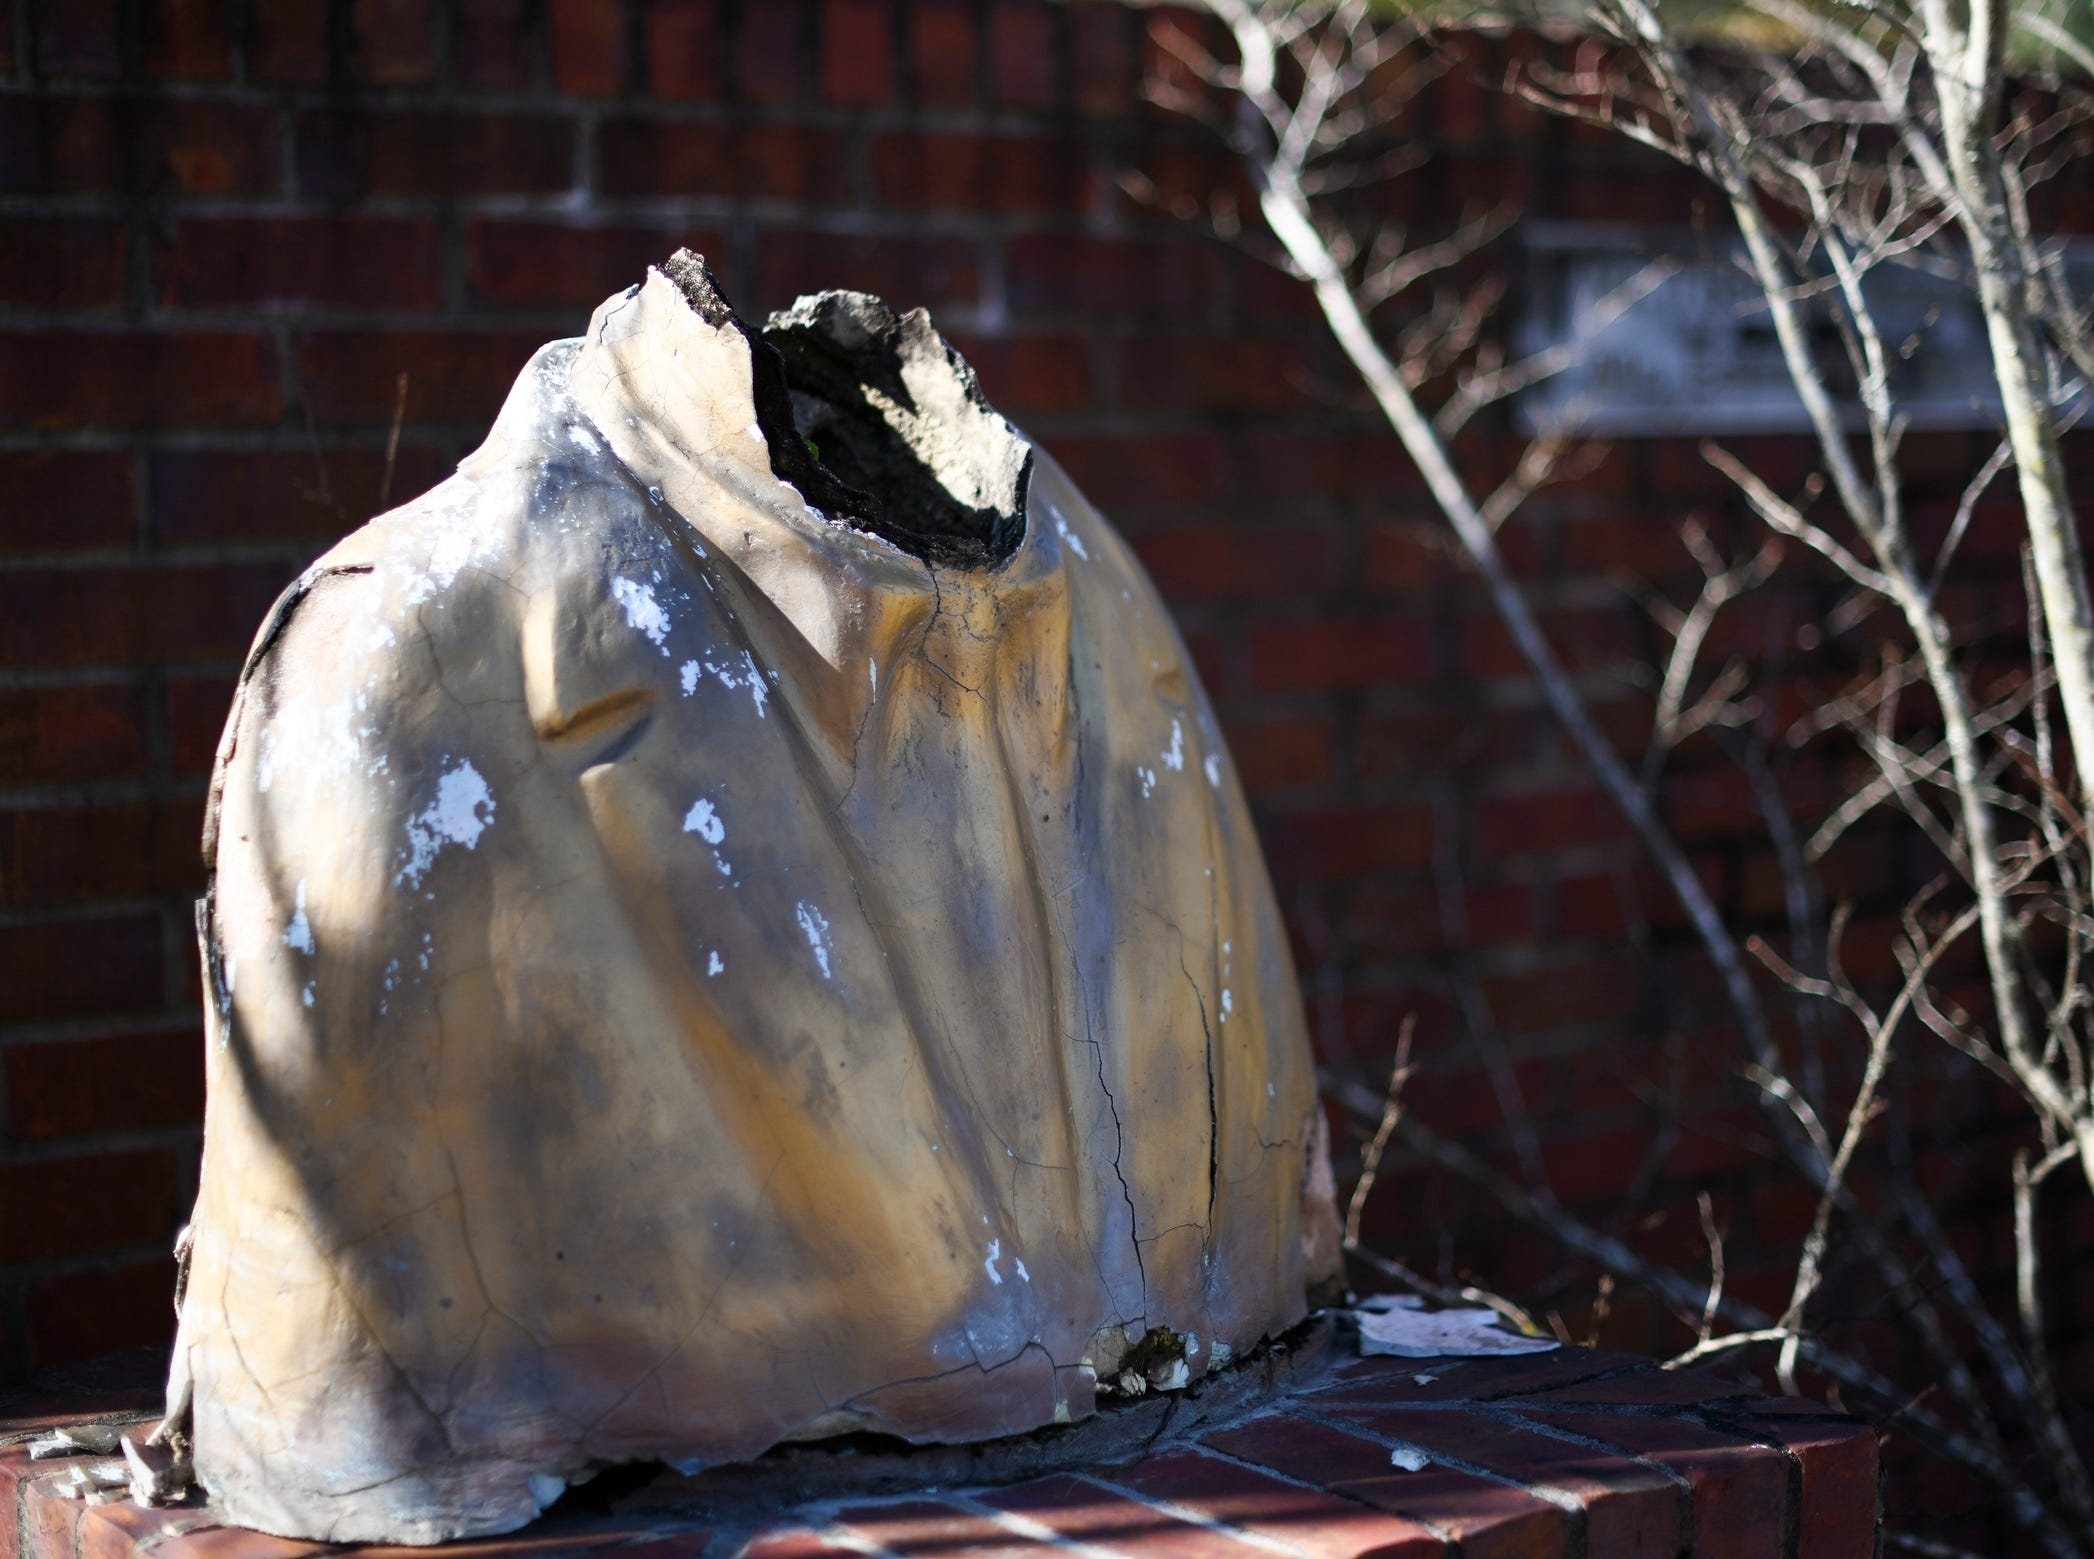 A vandalized bust remains on display at what was the Africatown Welcome Center in Mobile, Ala., on Tuesday, Jan. 29, 2019. The center was destroyed by Hurricane Katrina in 2005, and hasn't been rebuilt. (AP Photo/Julie Bennett)